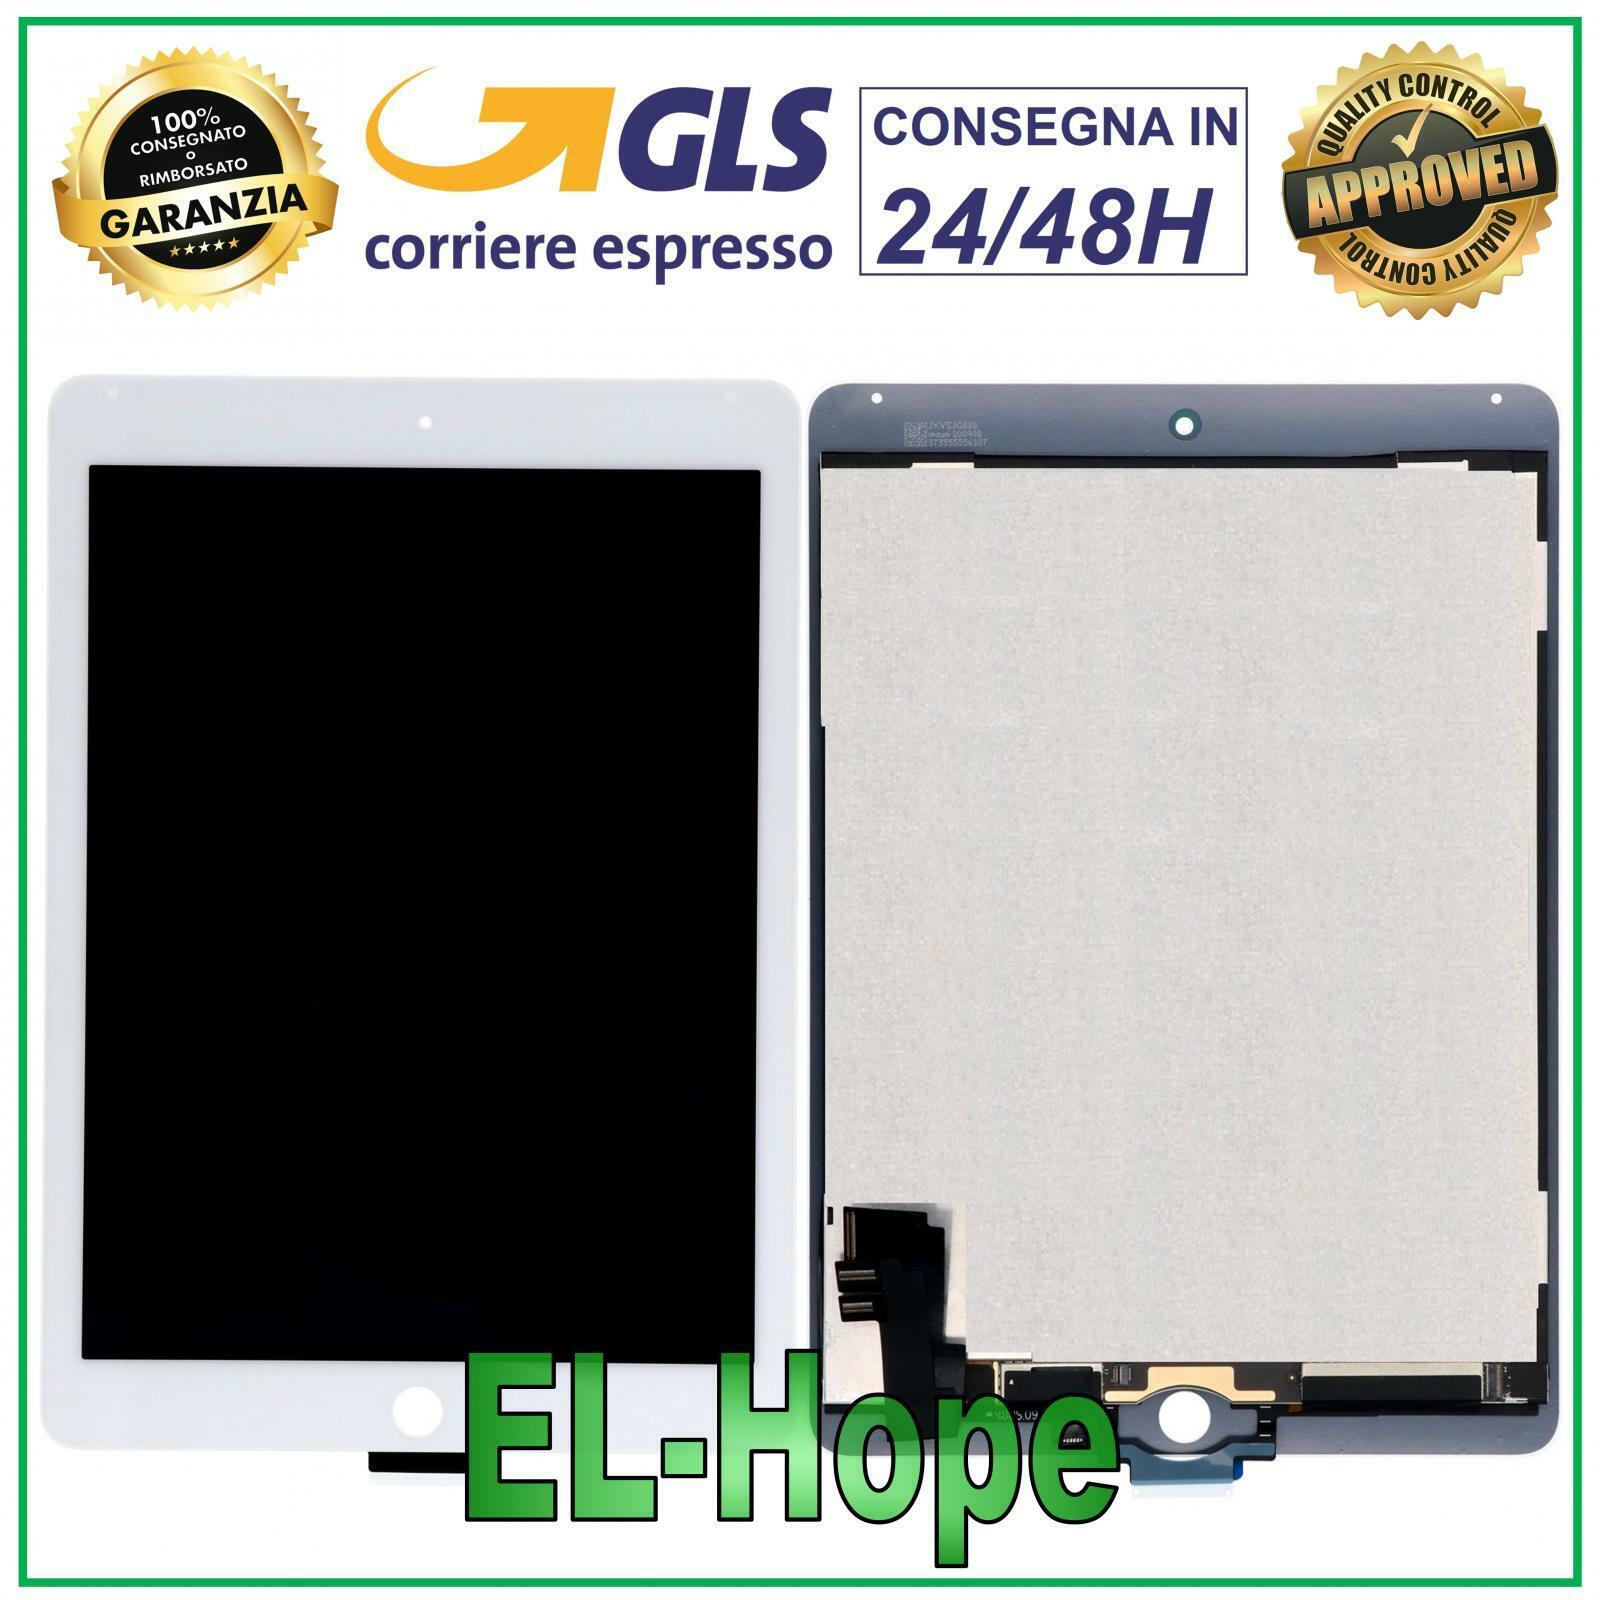 iPad: TOUCH SCREEN DISPLAY LCD PER APPLE iPad 6 Air 2 A1566 A1567 SCHERMO VETRO BIANCO